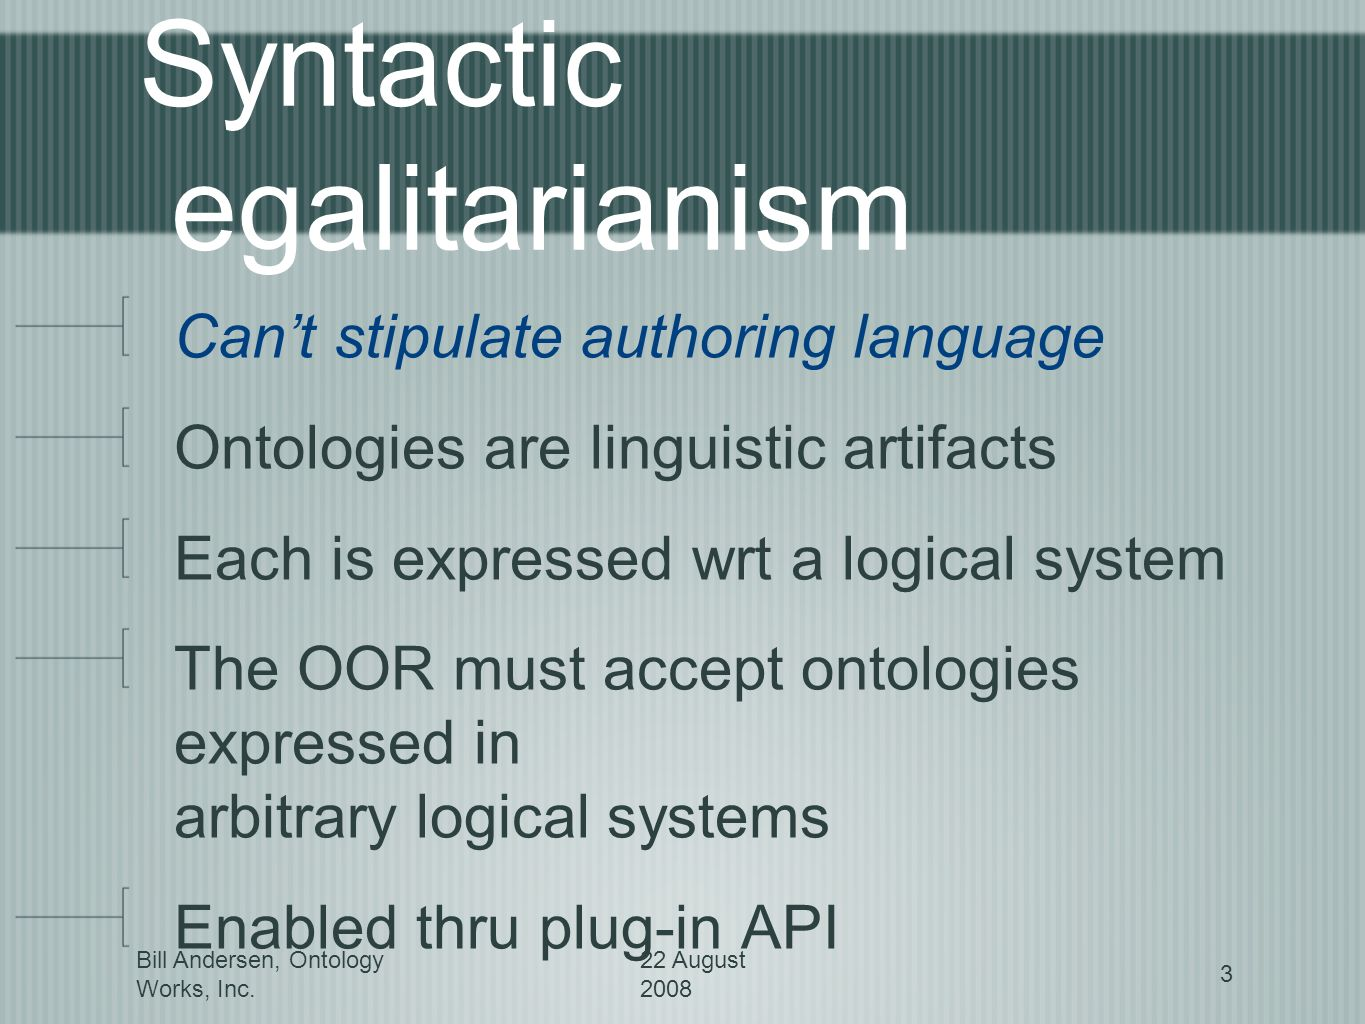 Bill Andersen, Ontology Works, Inc. 22 August 2008 3 Syntactic egalitarianism Cant stipulate authoring language Ontologies are linguistic artifacts Ea